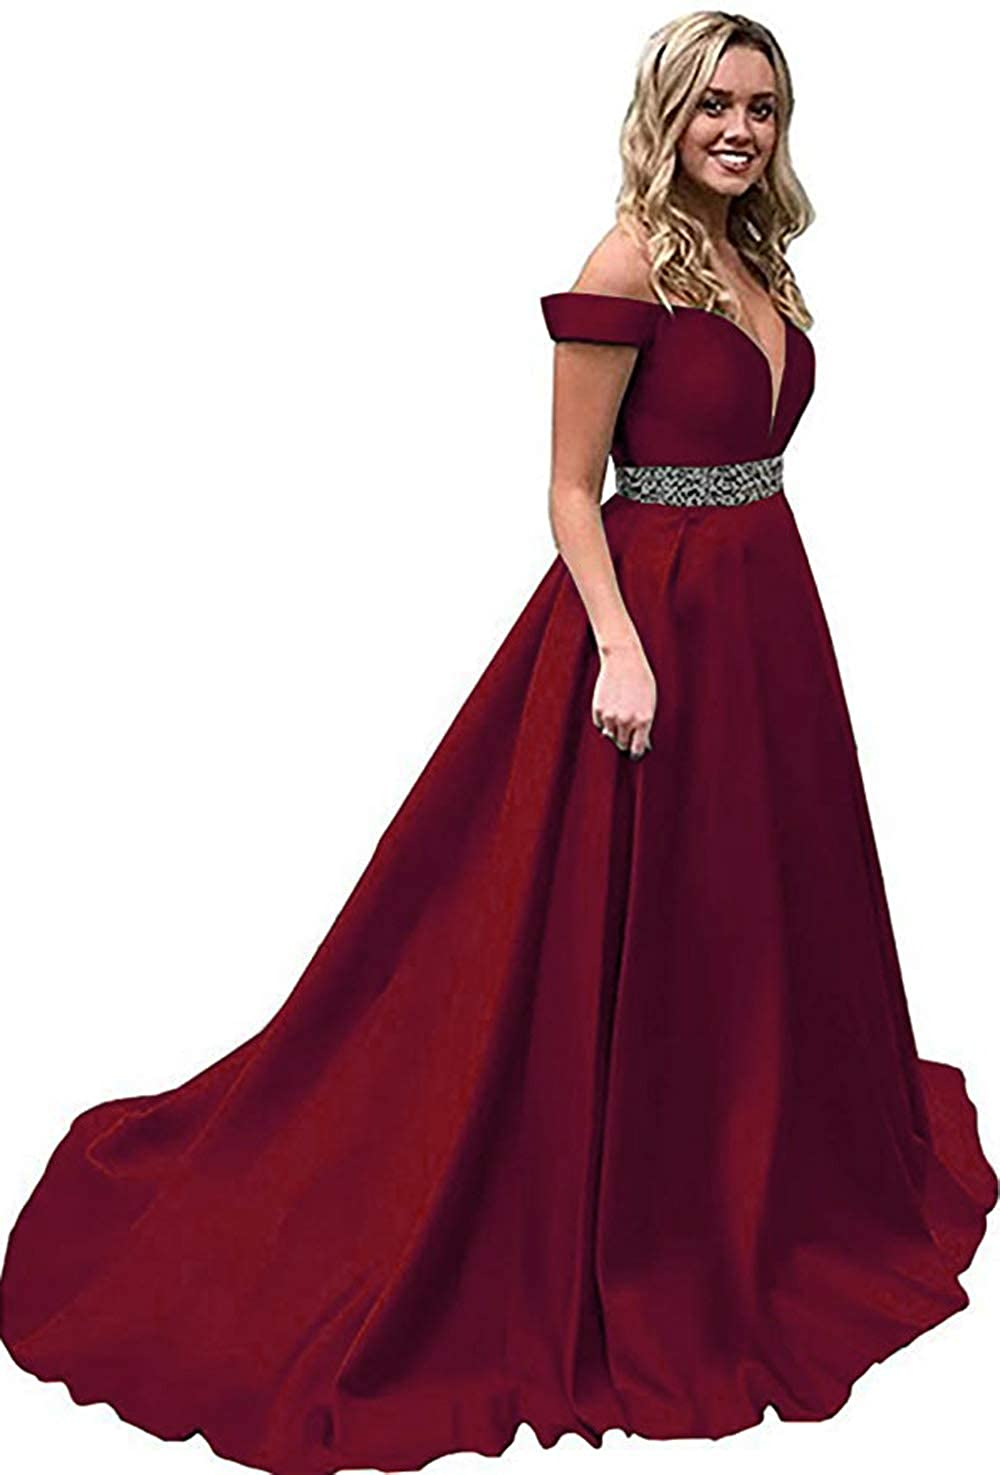 Burgundy Rmaytiked Womens Off The Shoulder Prom Dresses Long Beaded 2019 Satin A Line Formal Evening Ball Gowns with Pockets